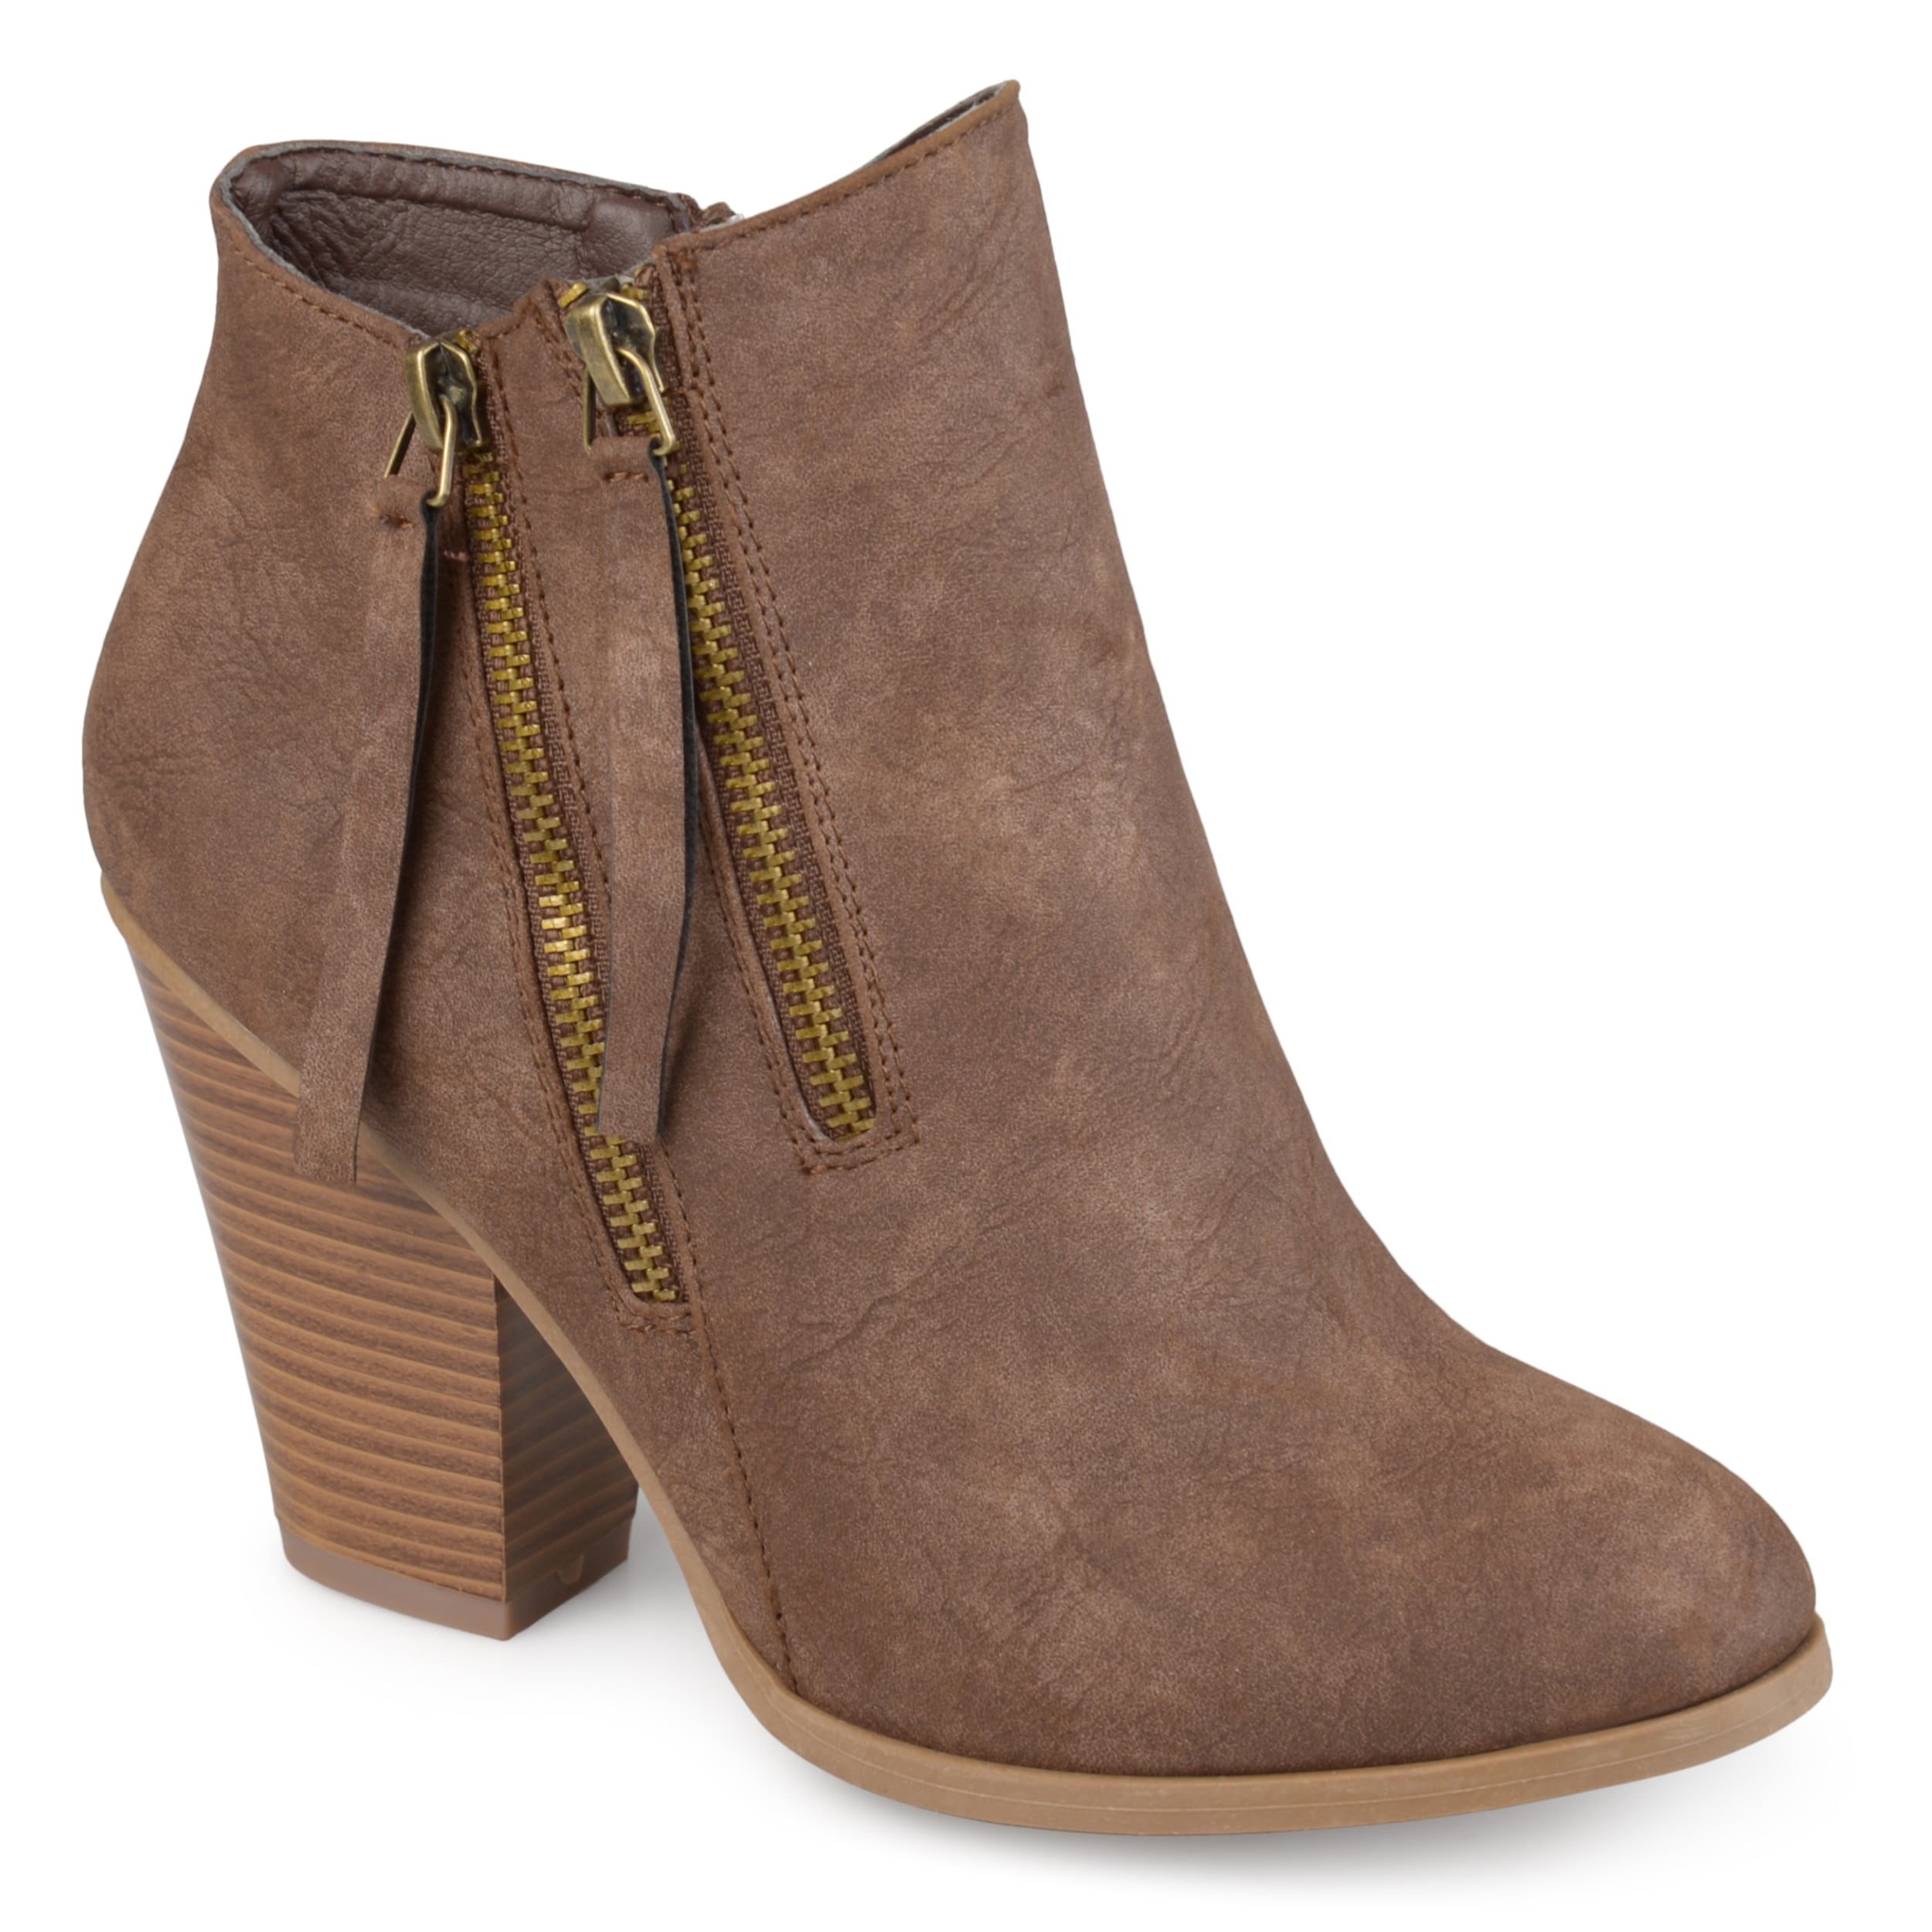 496be48394c54a Journee Collection Women's 'Vally' Double Zipper Stacked Wood Heel Booties